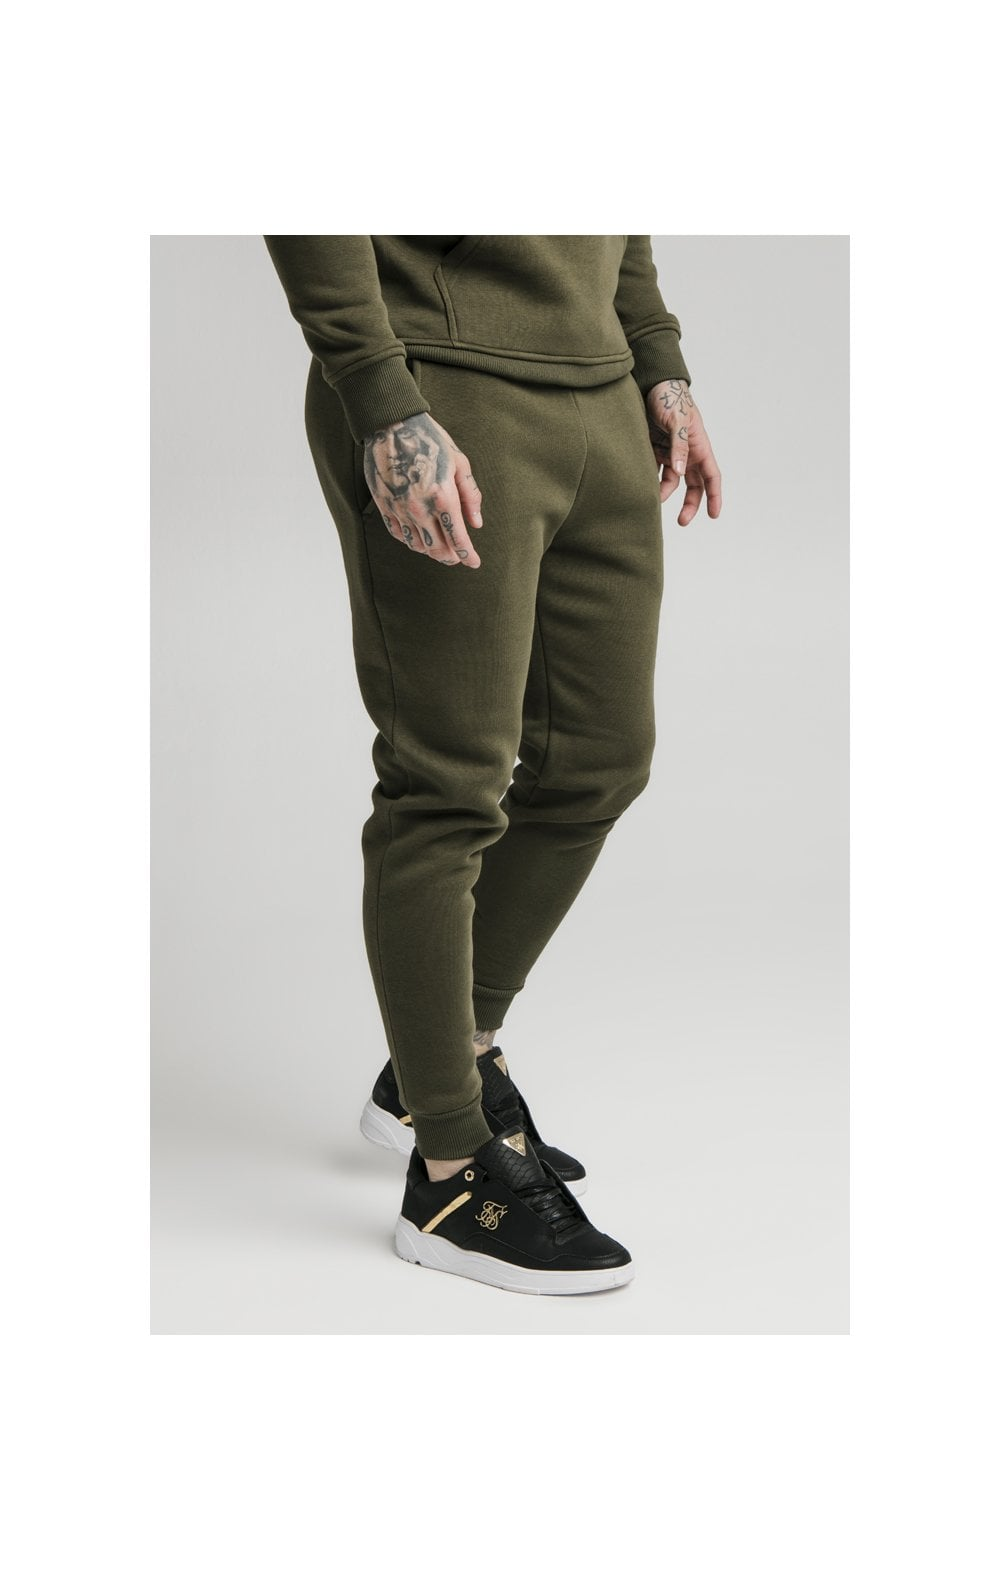 SikSilk Muscle Fit Jogger – Khaki (2)